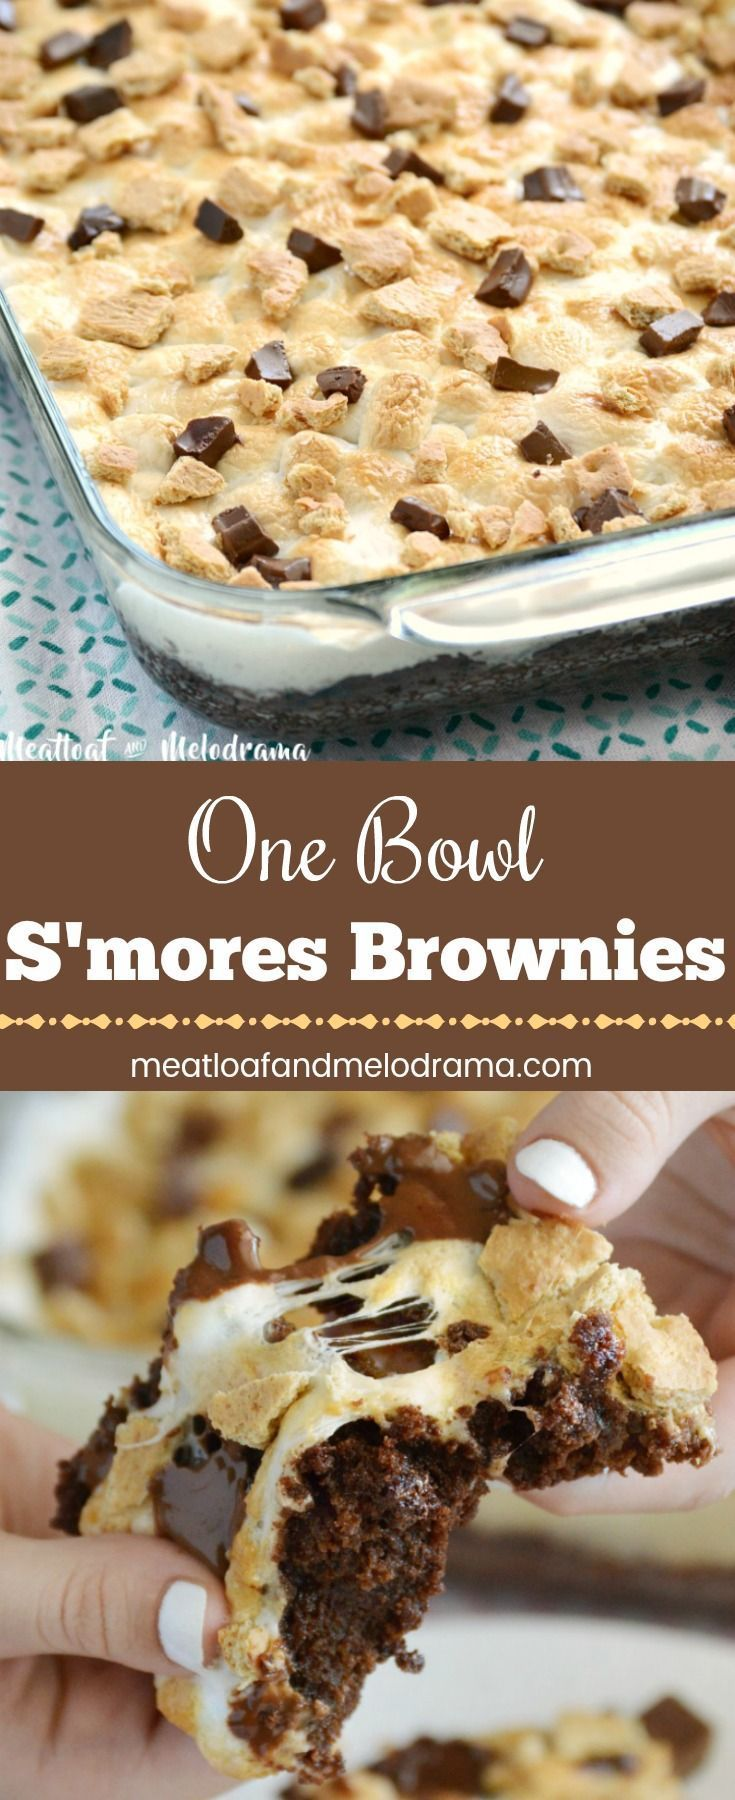 One Bowl S'mores Brownies #desserts